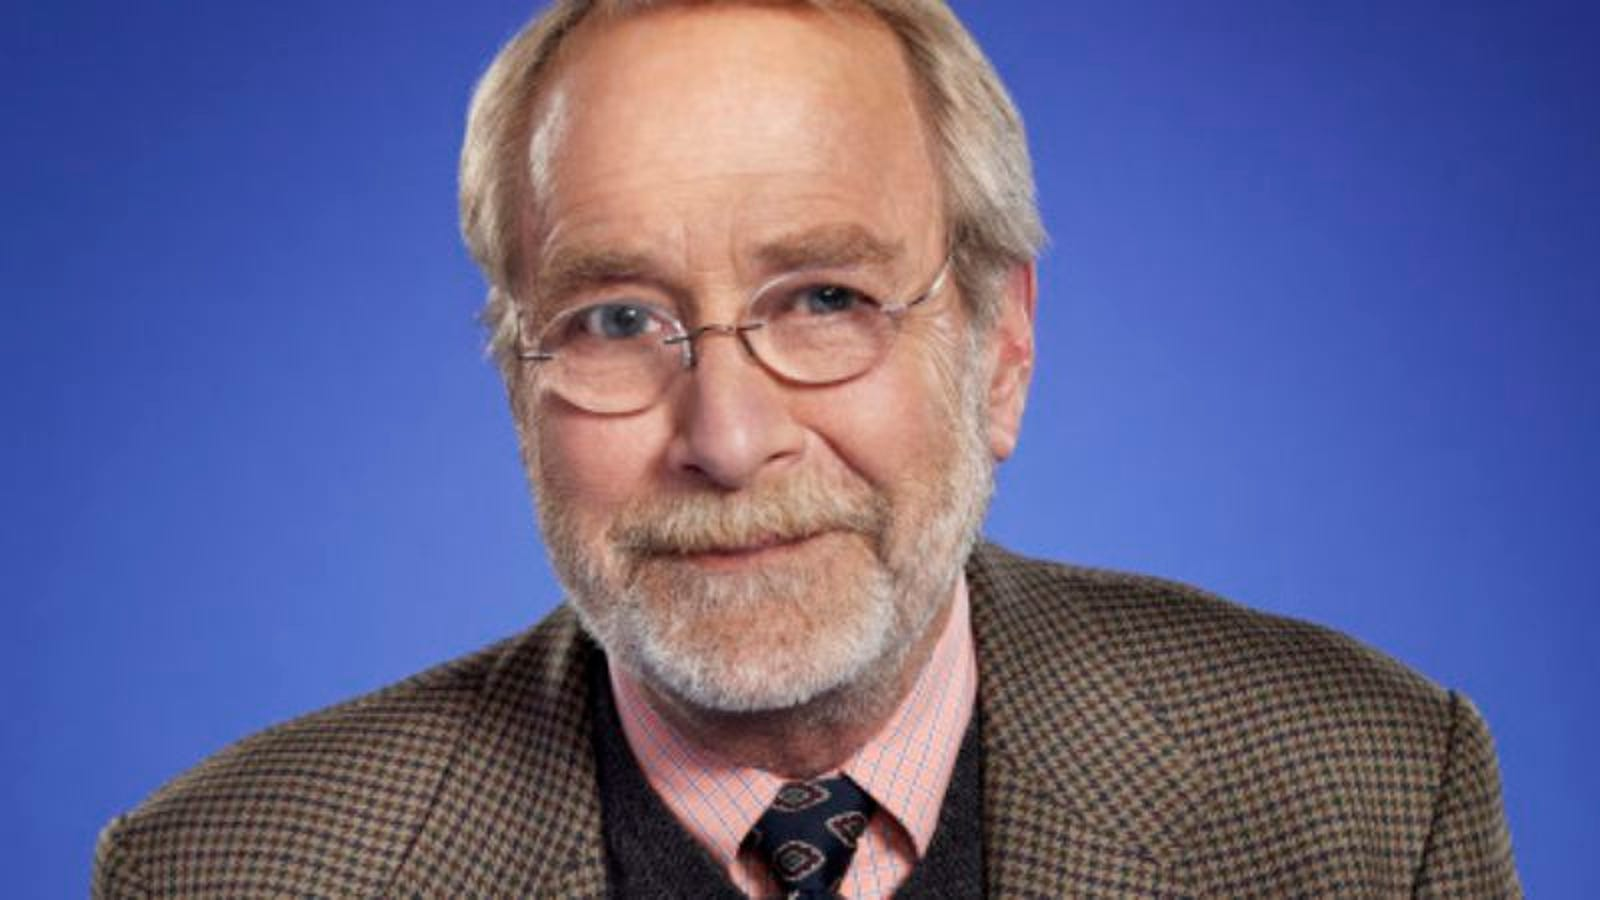 Martin Mull talks Dads, Lenny Bruce, and opening for The Pointer Sisters